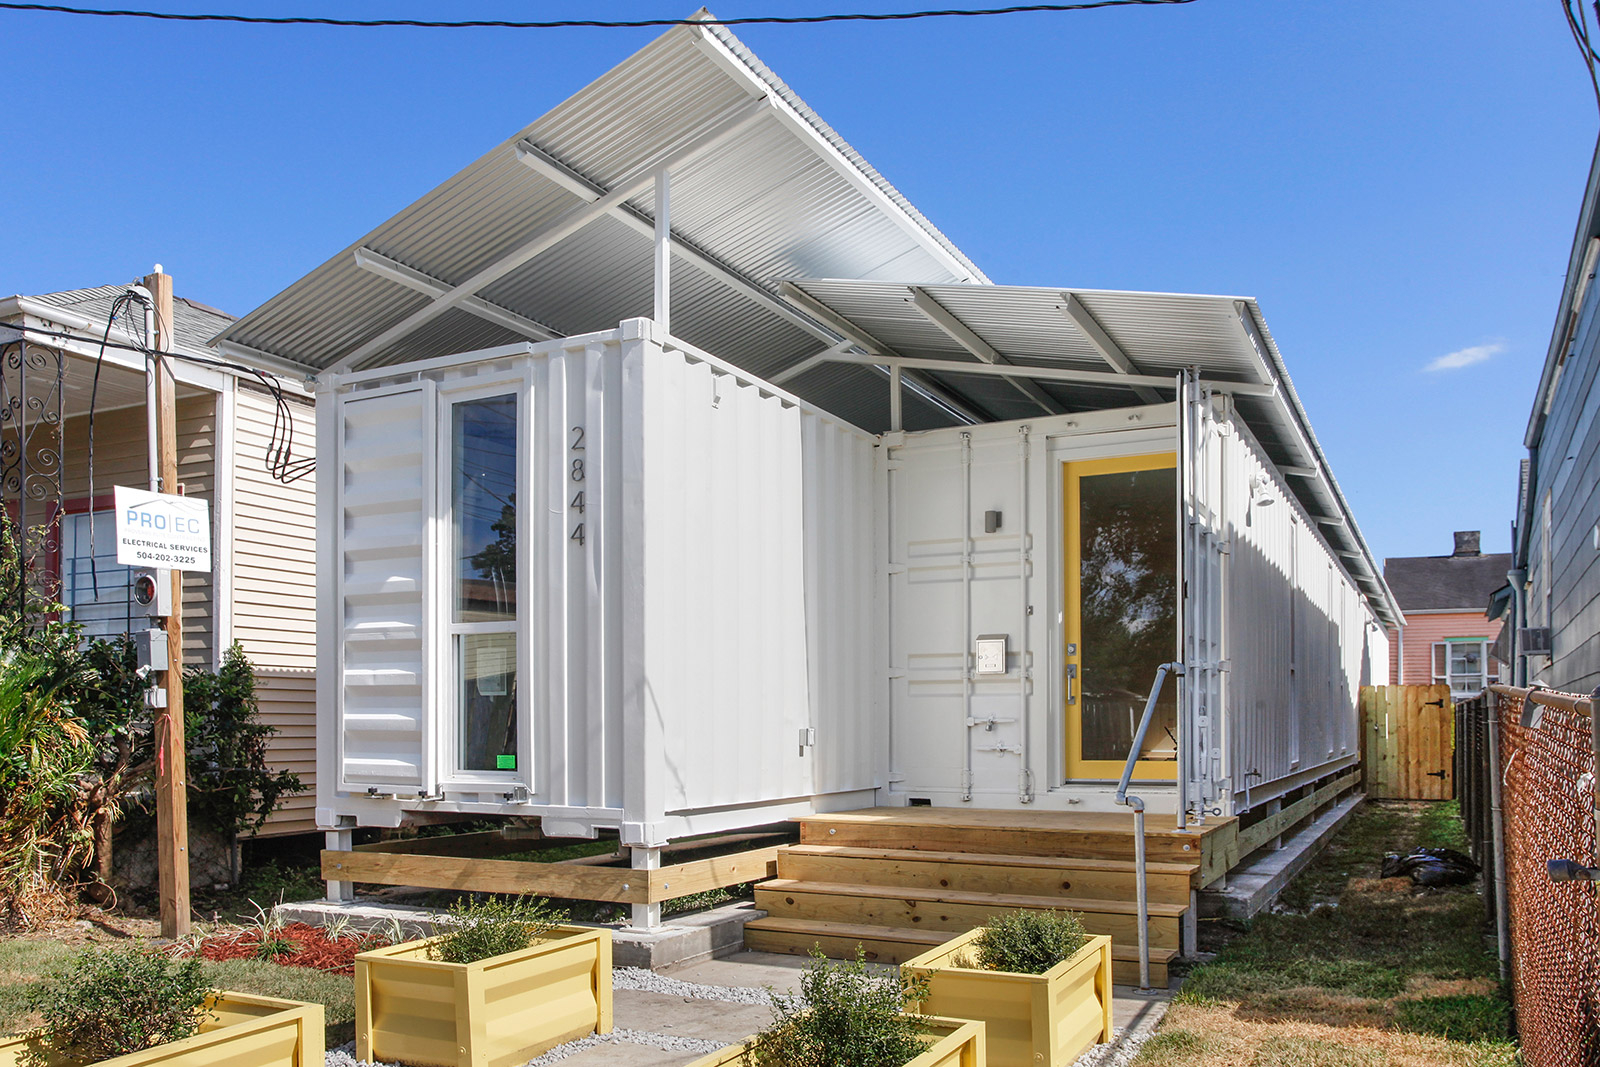 Shipping Container House On Dryades